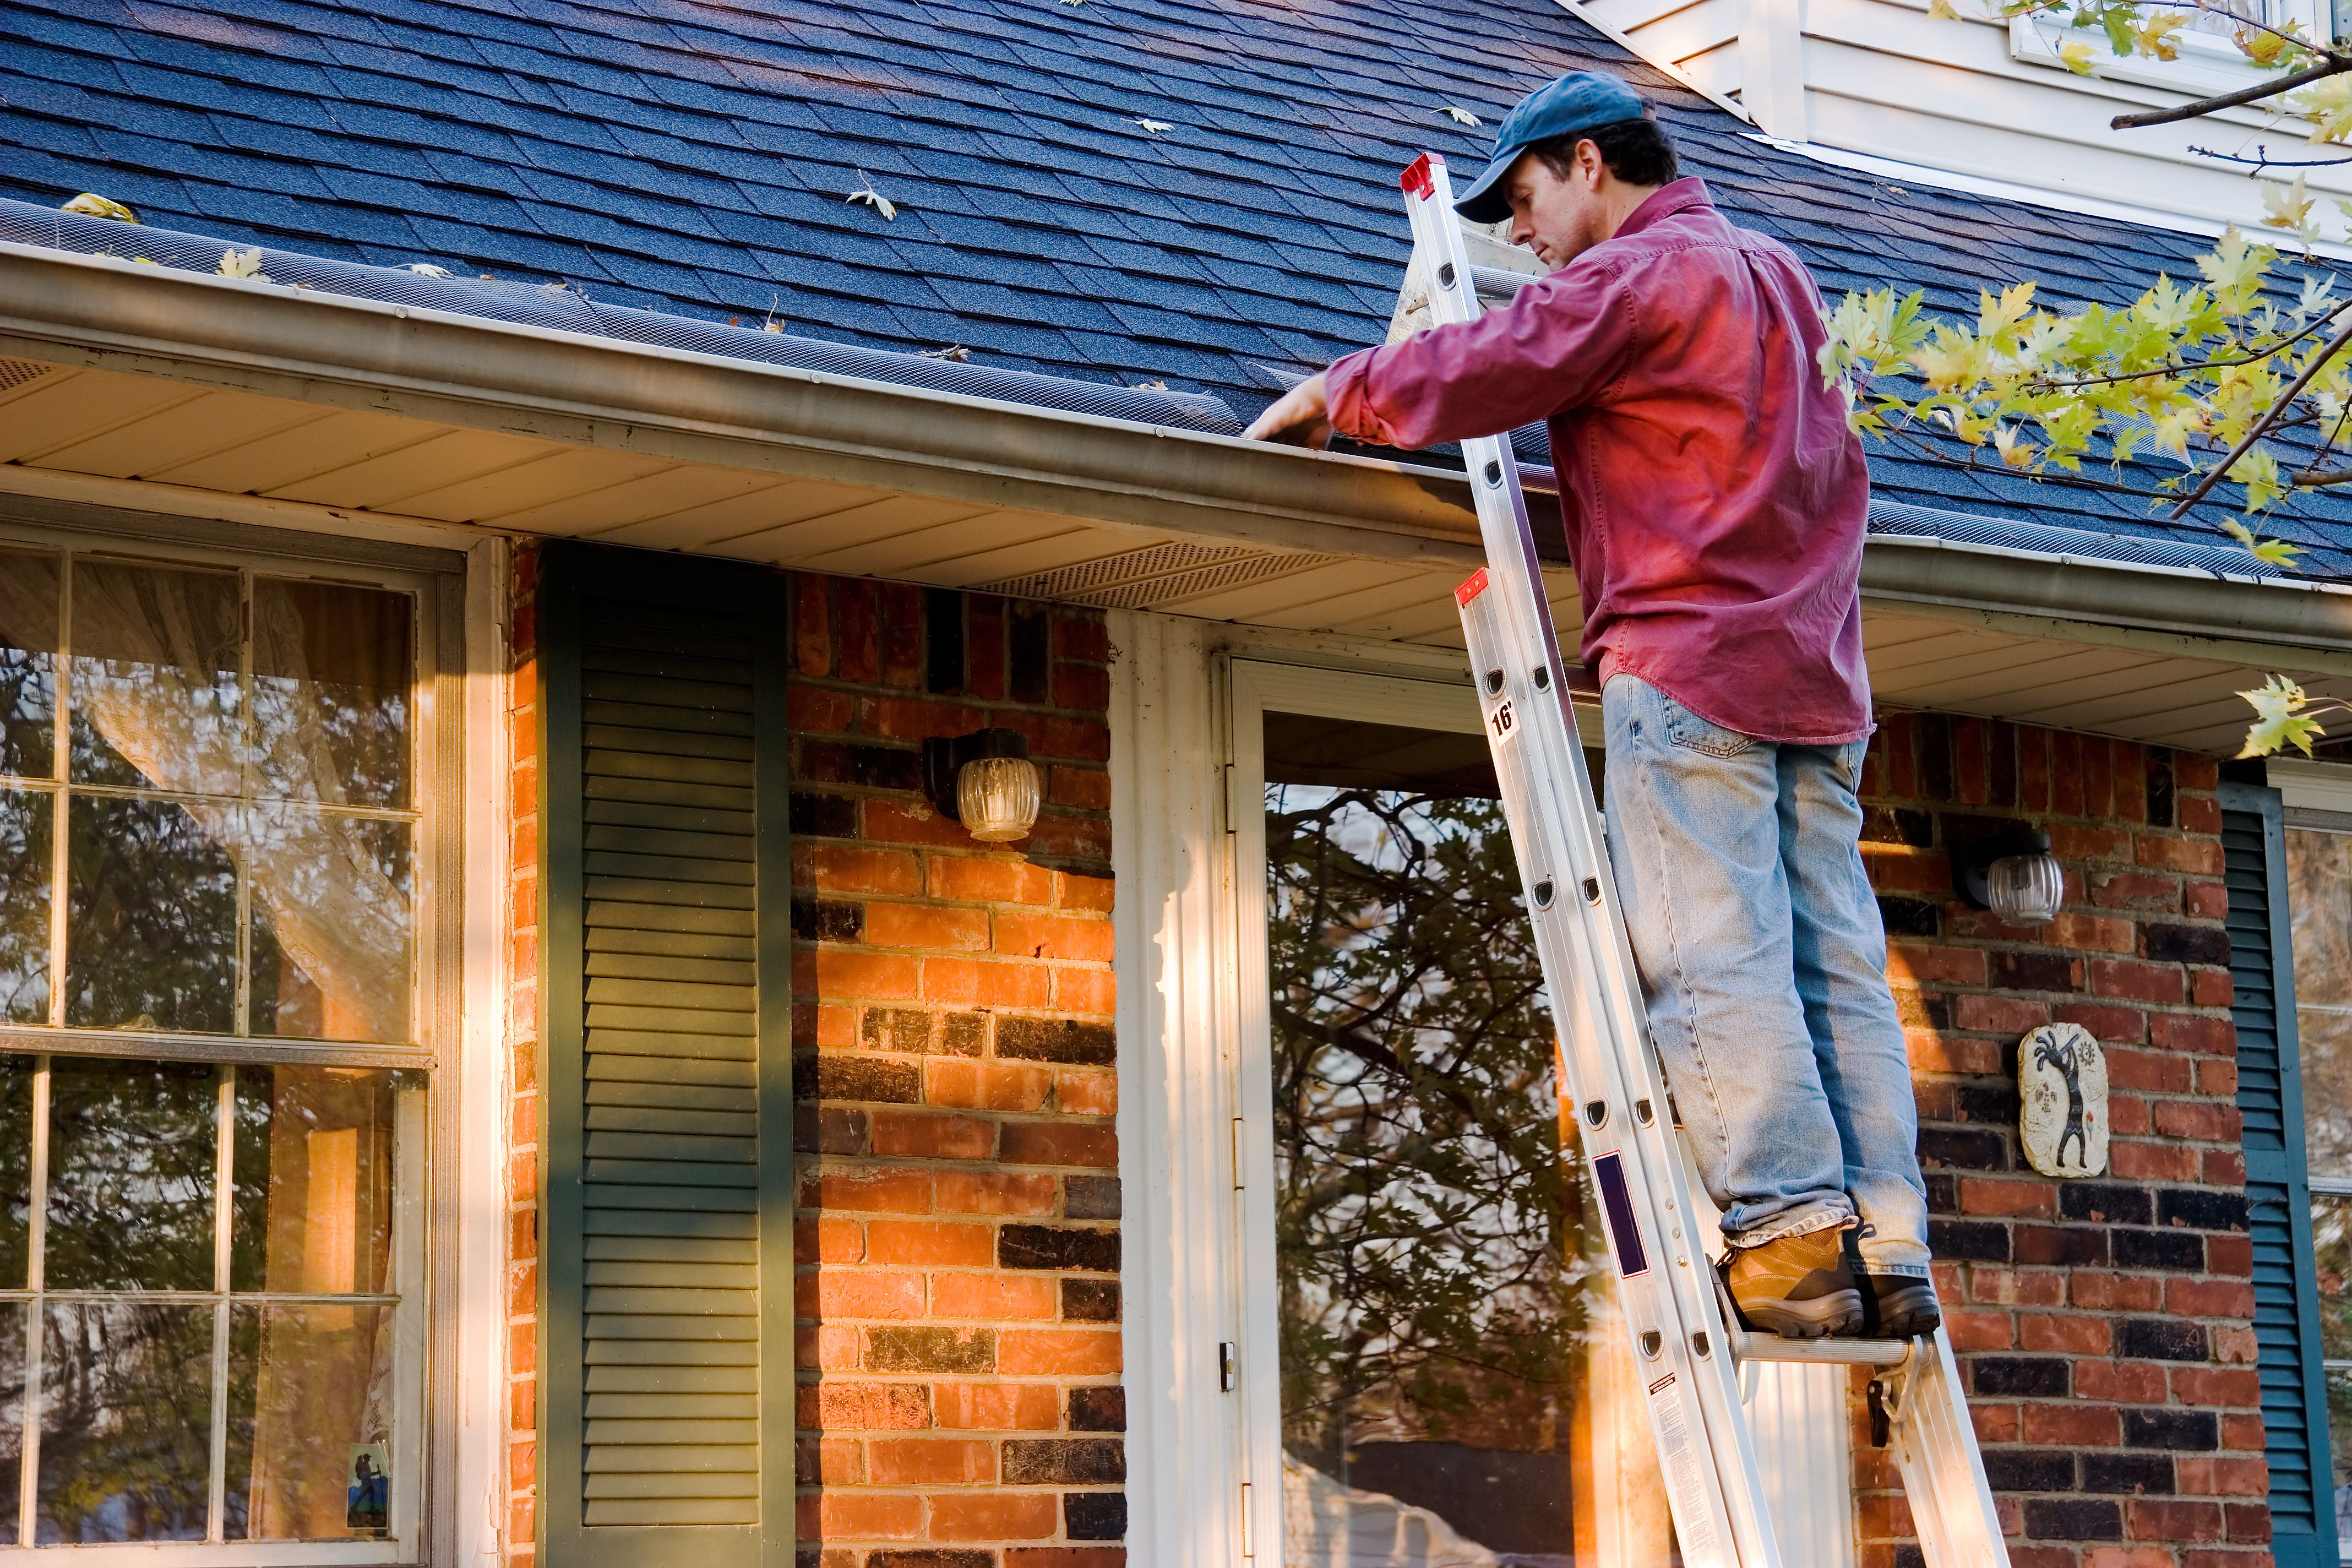 Ready Your Home For Fall 5 Easy Steps Fall Homemaintenance How To Install Gutters Home Maintenance Checklist Home Repairs